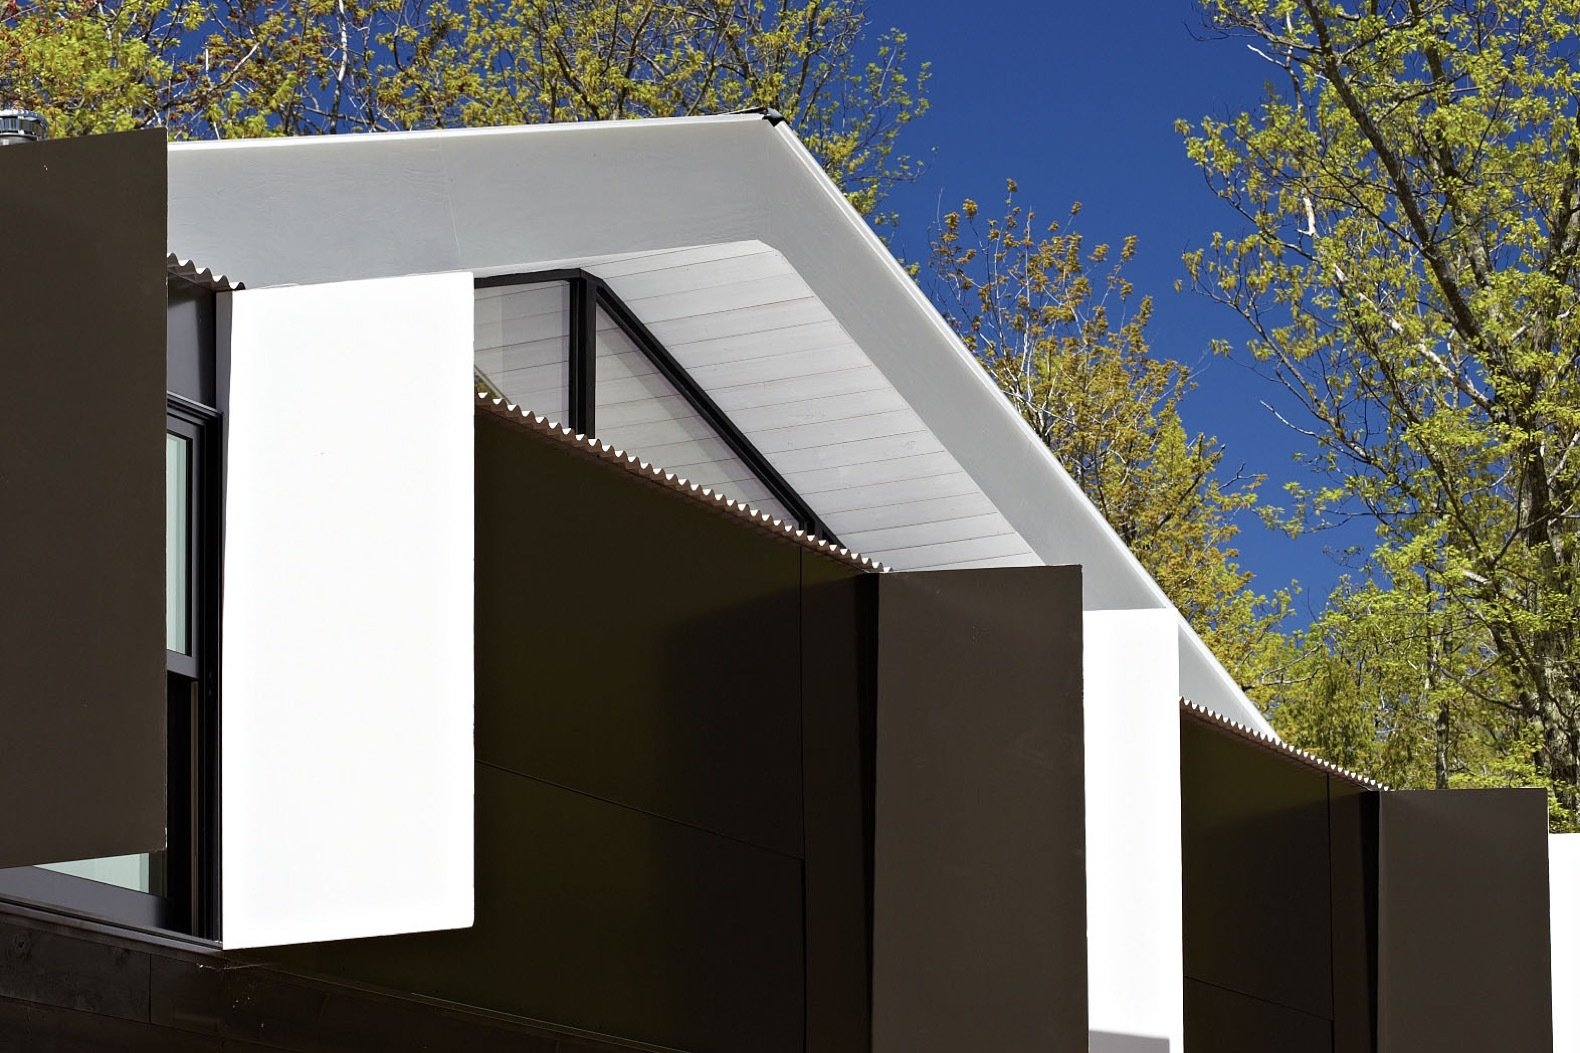 Exterior, Wood Siding Material, Prefab Building Type, Metal Roof Material, Gable RoofLine, and Cabin Building Type The roof overhang is painted white to bounce more light indoors.   Photo 10 of 15 in This Prefab Cabin Offers an Affordable Answer to Island Construction